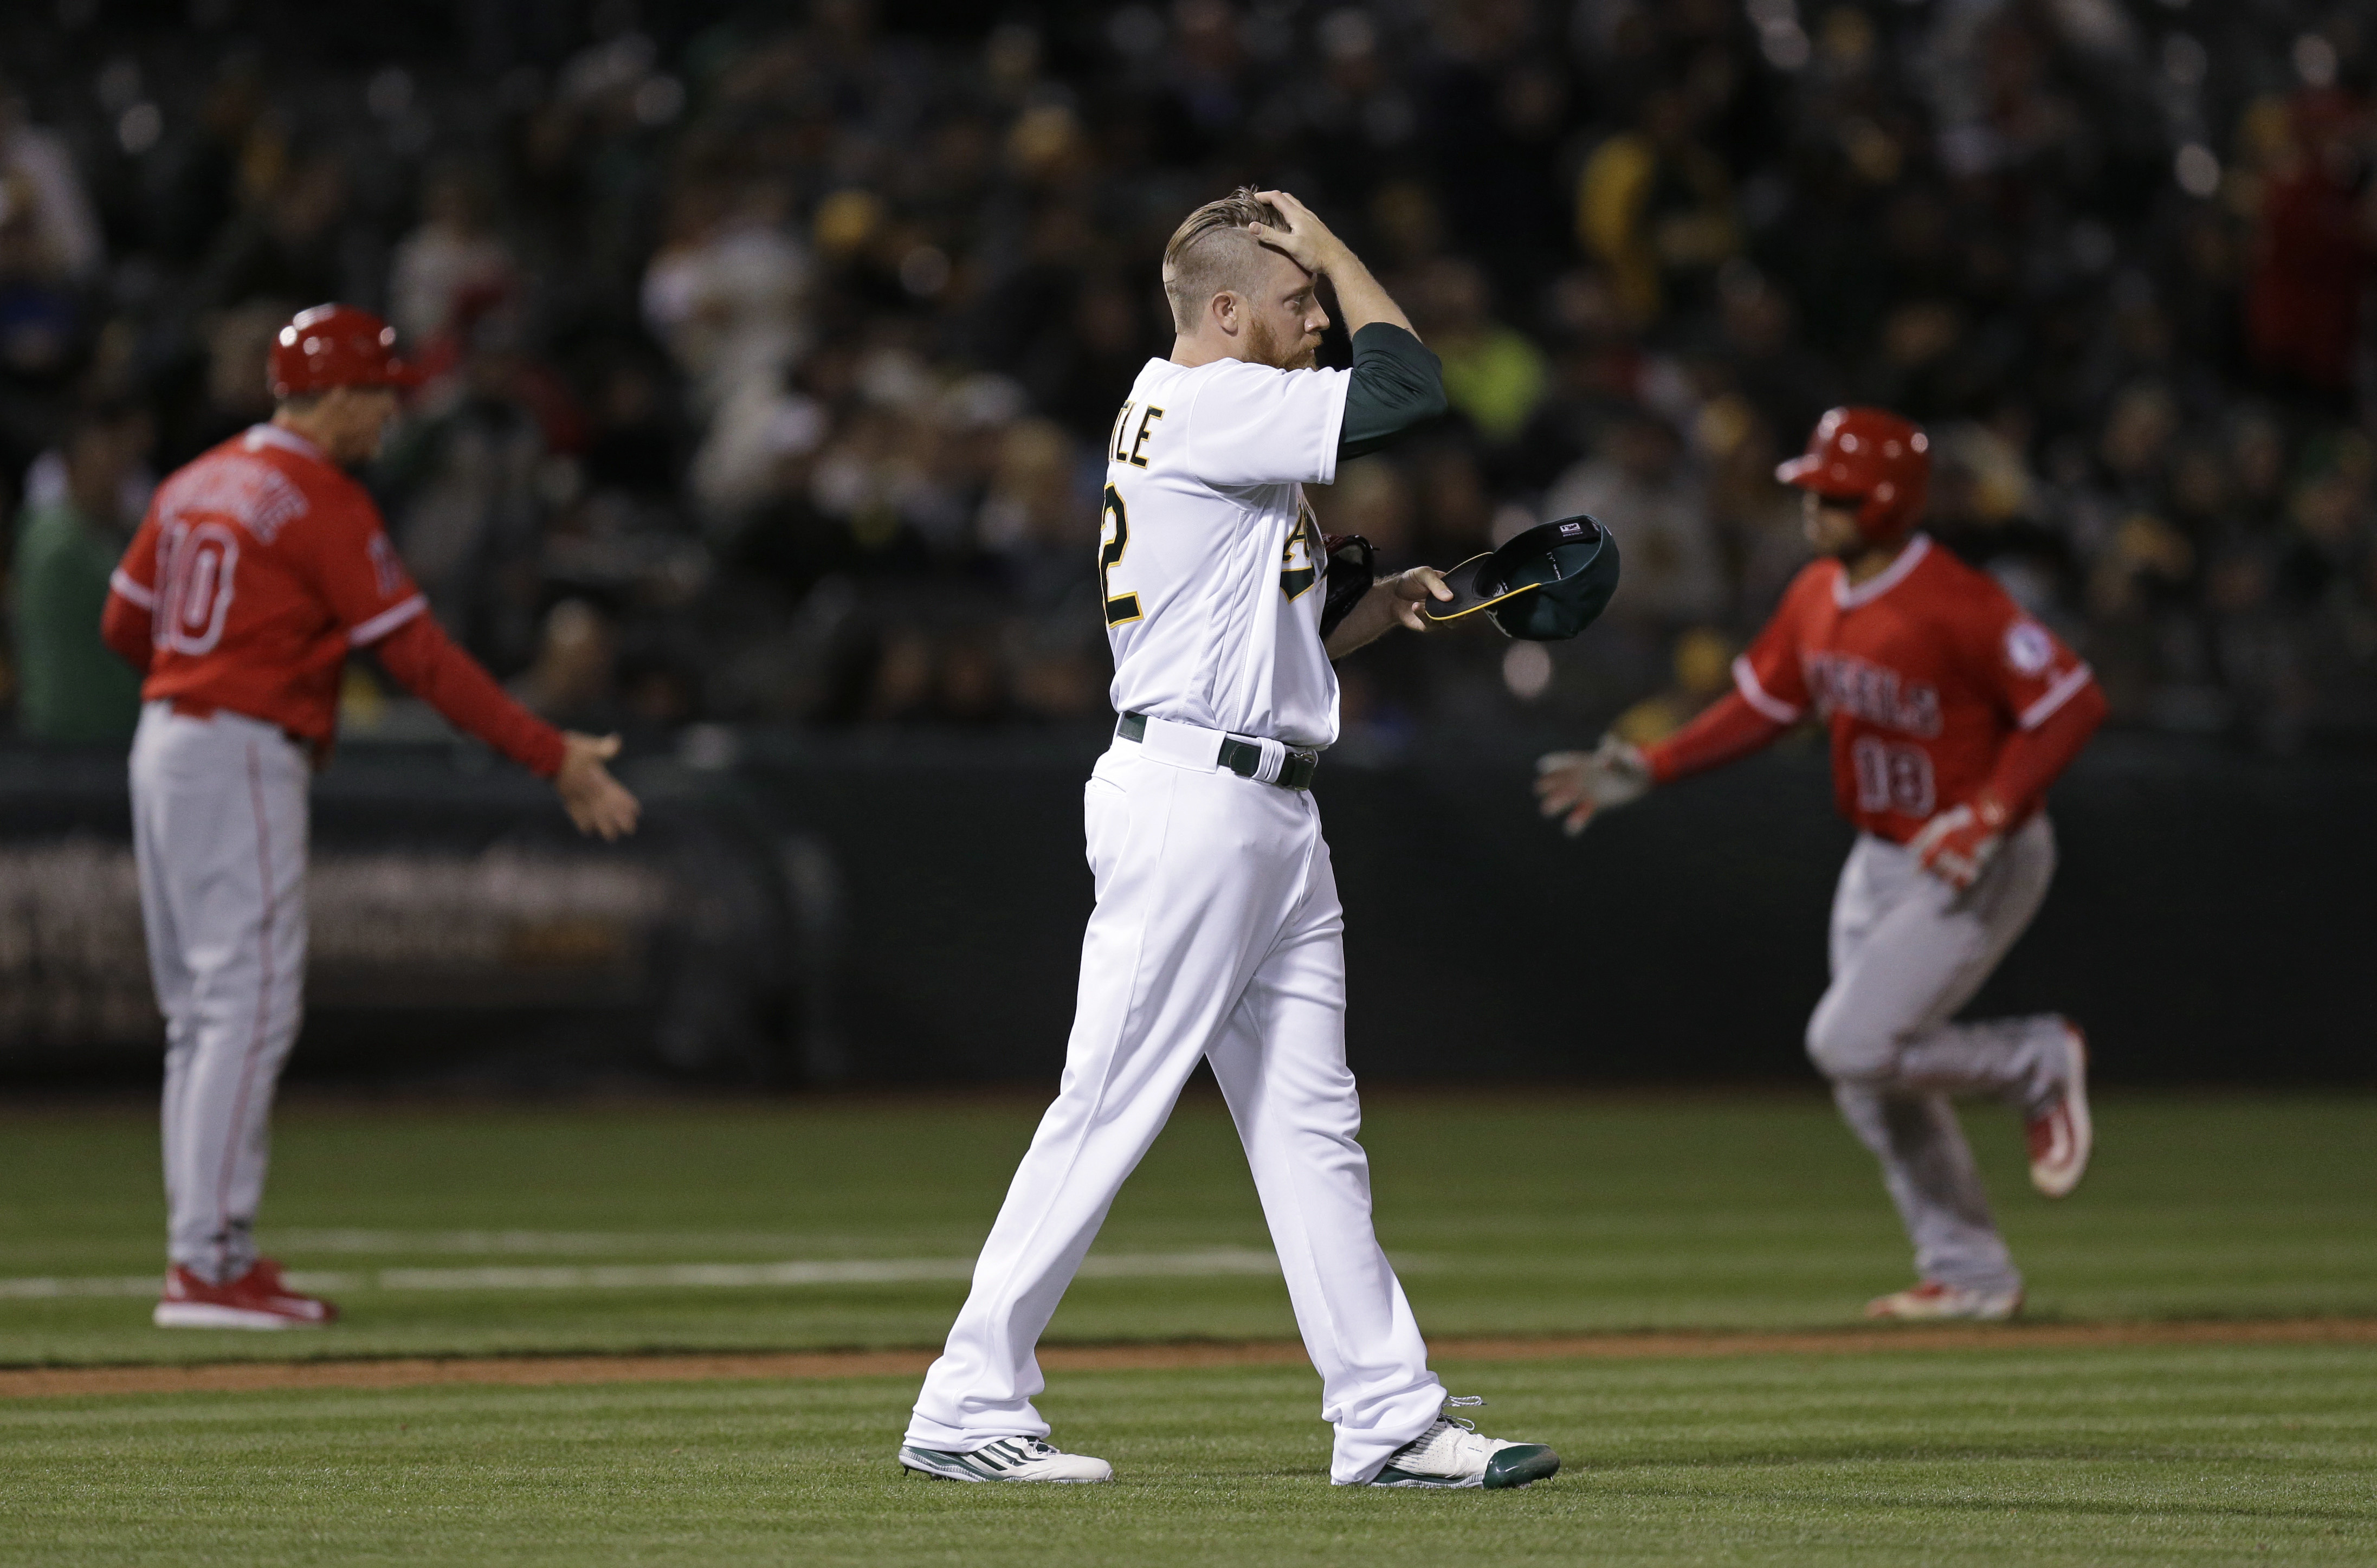 Oakland Athletics' Sean Doolittle places his hand to his head after giving up a two-run home run to Los Angeles Angels' Geovany Soto, right, during the ninth inning of a baseball game Tuesday, April 12, 2016, in Oakland, Calif. (AP Photo/Ben Margot)